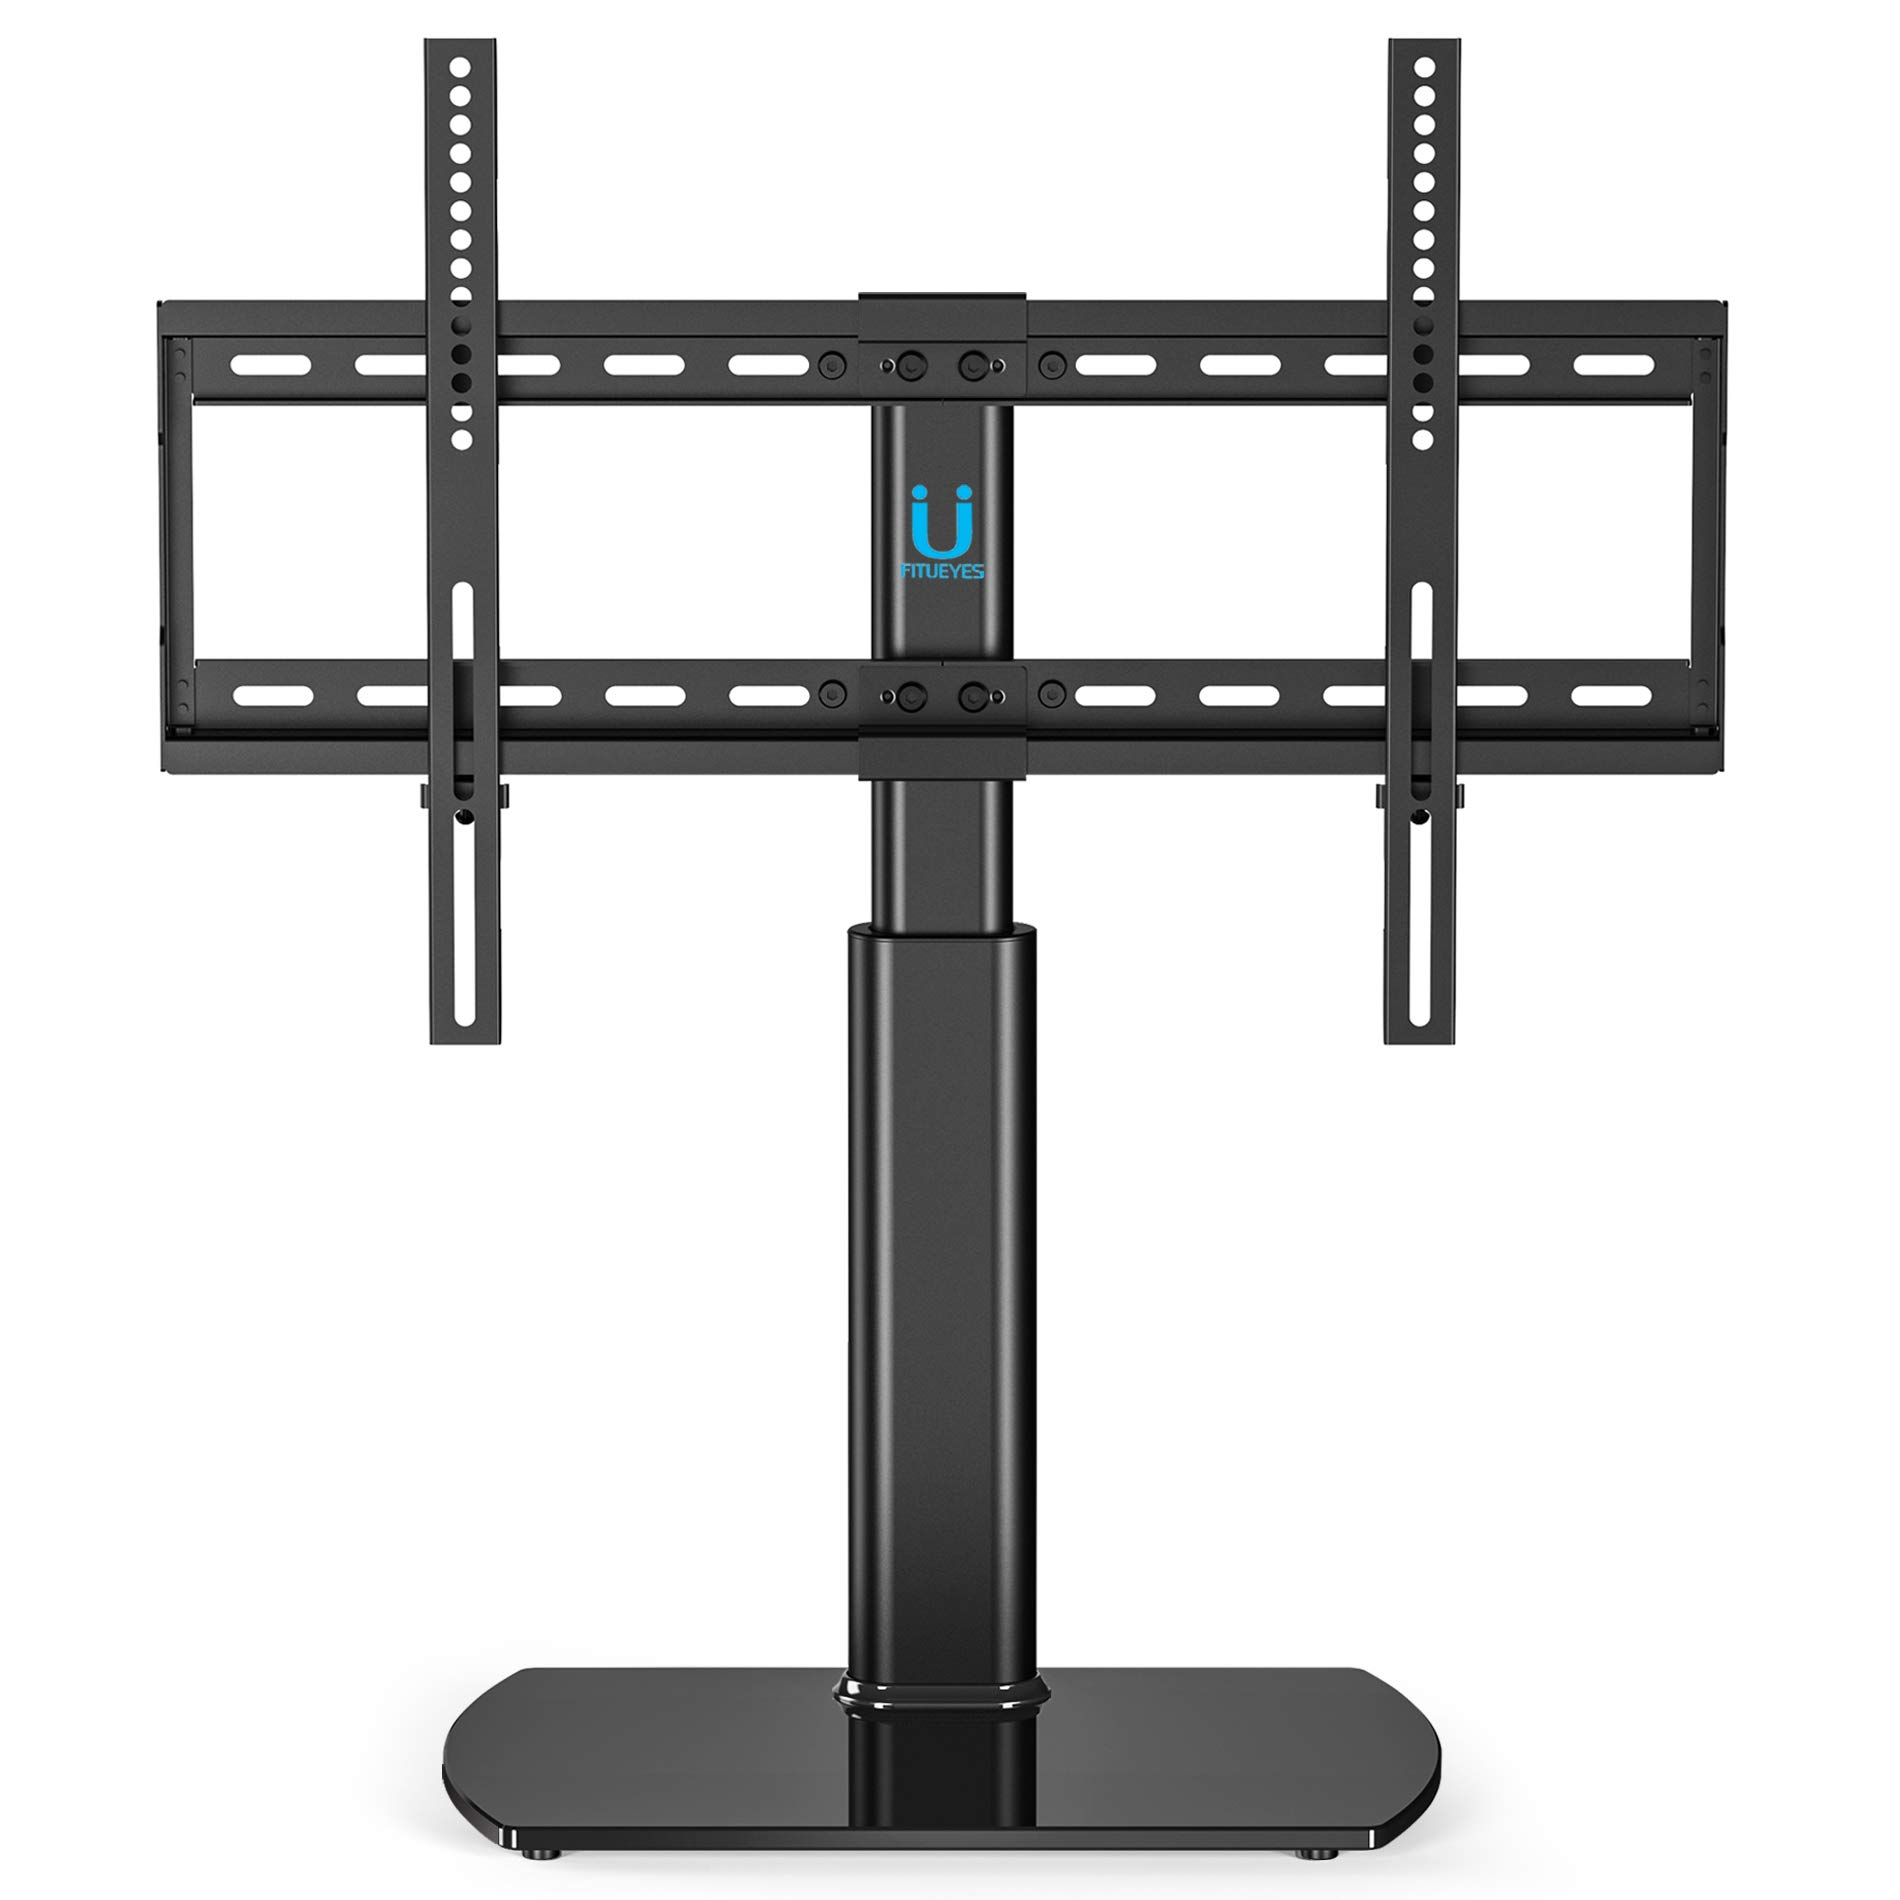 FITUEYES Universal TV Stand/Base Tabletop TV Stand with Wall Mount for 32 to 65 inch Flat Screen 3 Level Height Adjustable, Heavy Duty Tempered Glass Base, Holds up to 110lbs Screens TT107001GB by FITUEYES